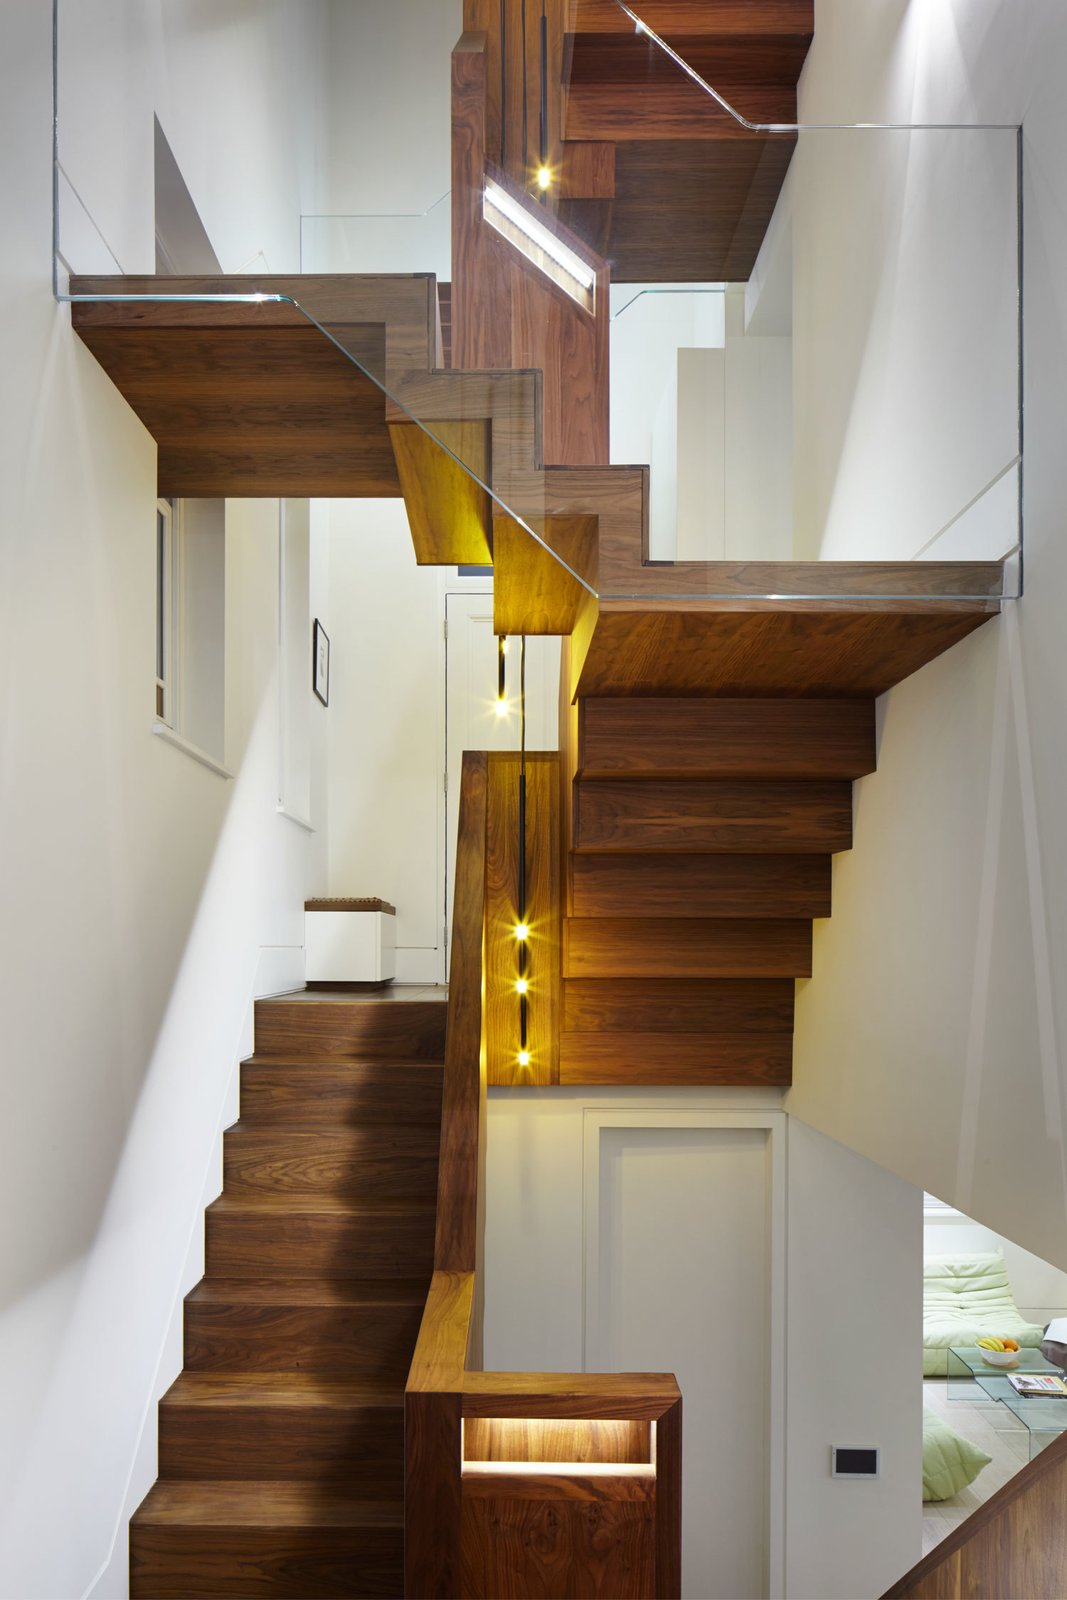 """The architects replaced the original, carpeted stairway with one built from black walnut. """"[The goal] was to mirror a large tree that had to be felled in the garden before the project started,"""" Webster explains. """"The staircase rises up through the building, with the branches being the landings that reach out to the different rooms."""" Tom Dixon lights hang at the center of the stairs.  190+ Best Modern Staircase Ideas from Lantern Home"""